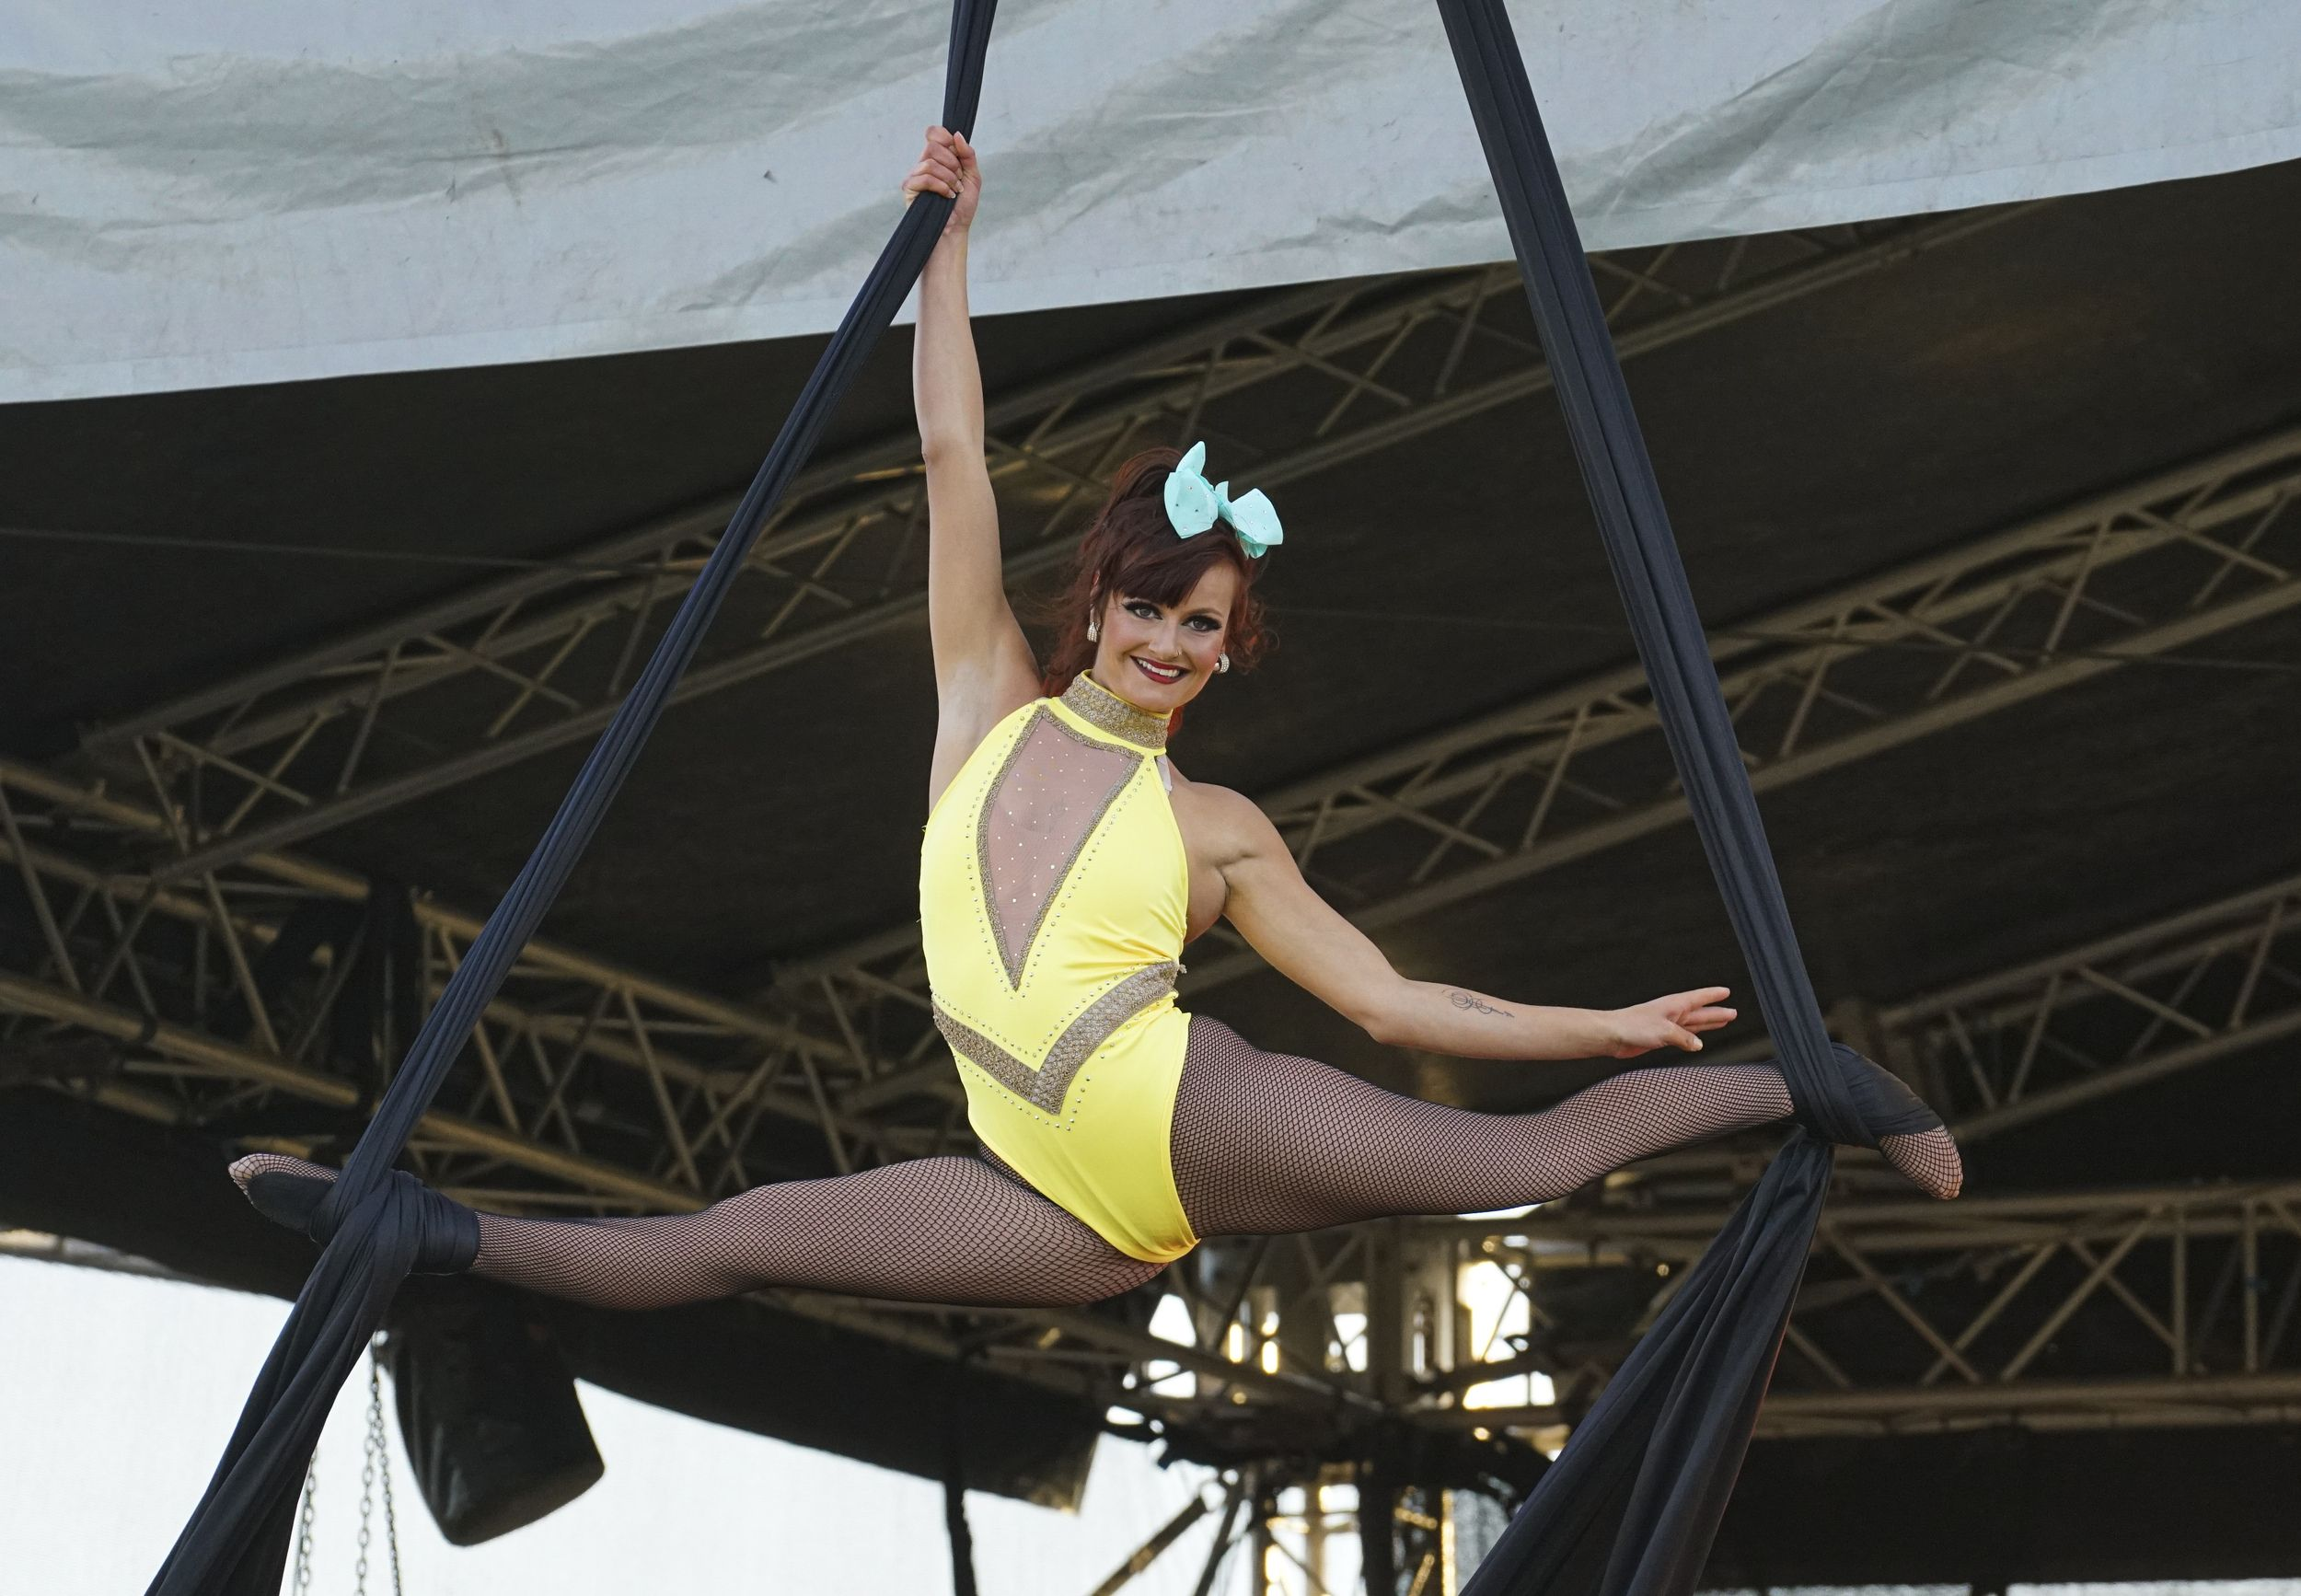 The circus performers show their skills on the opening